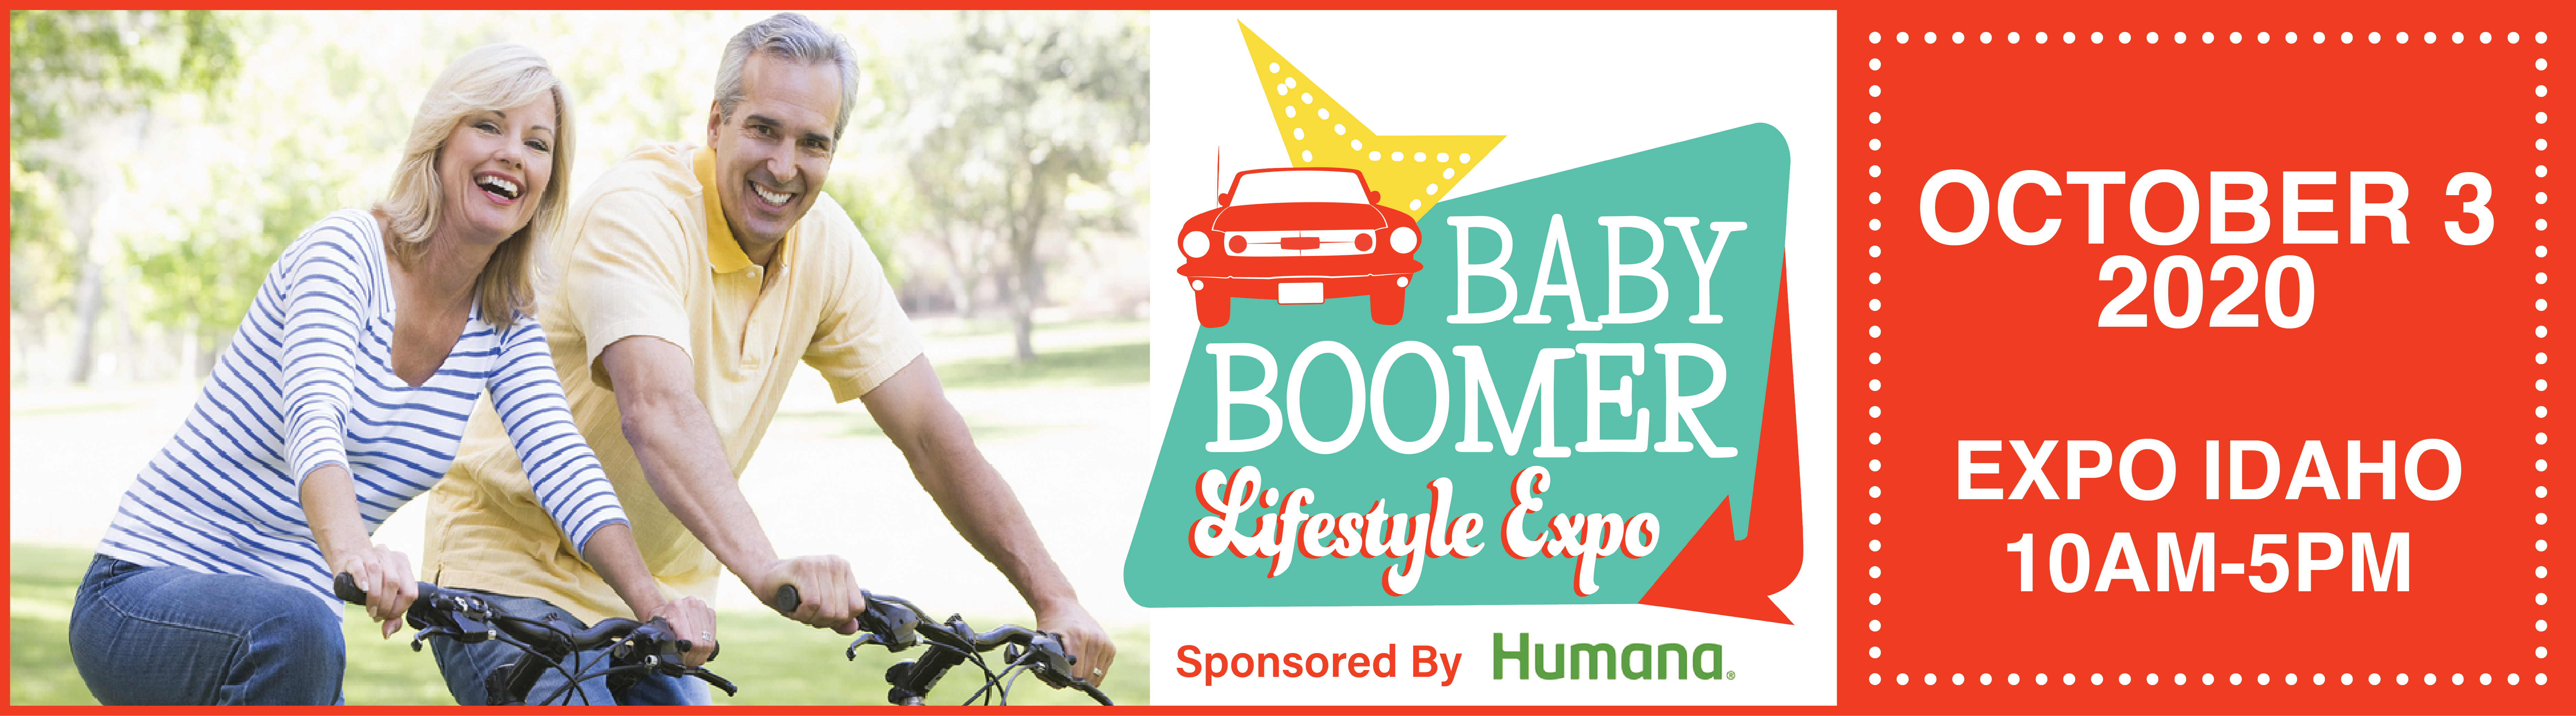 Baby Boomer Lifestyle Expo website slider